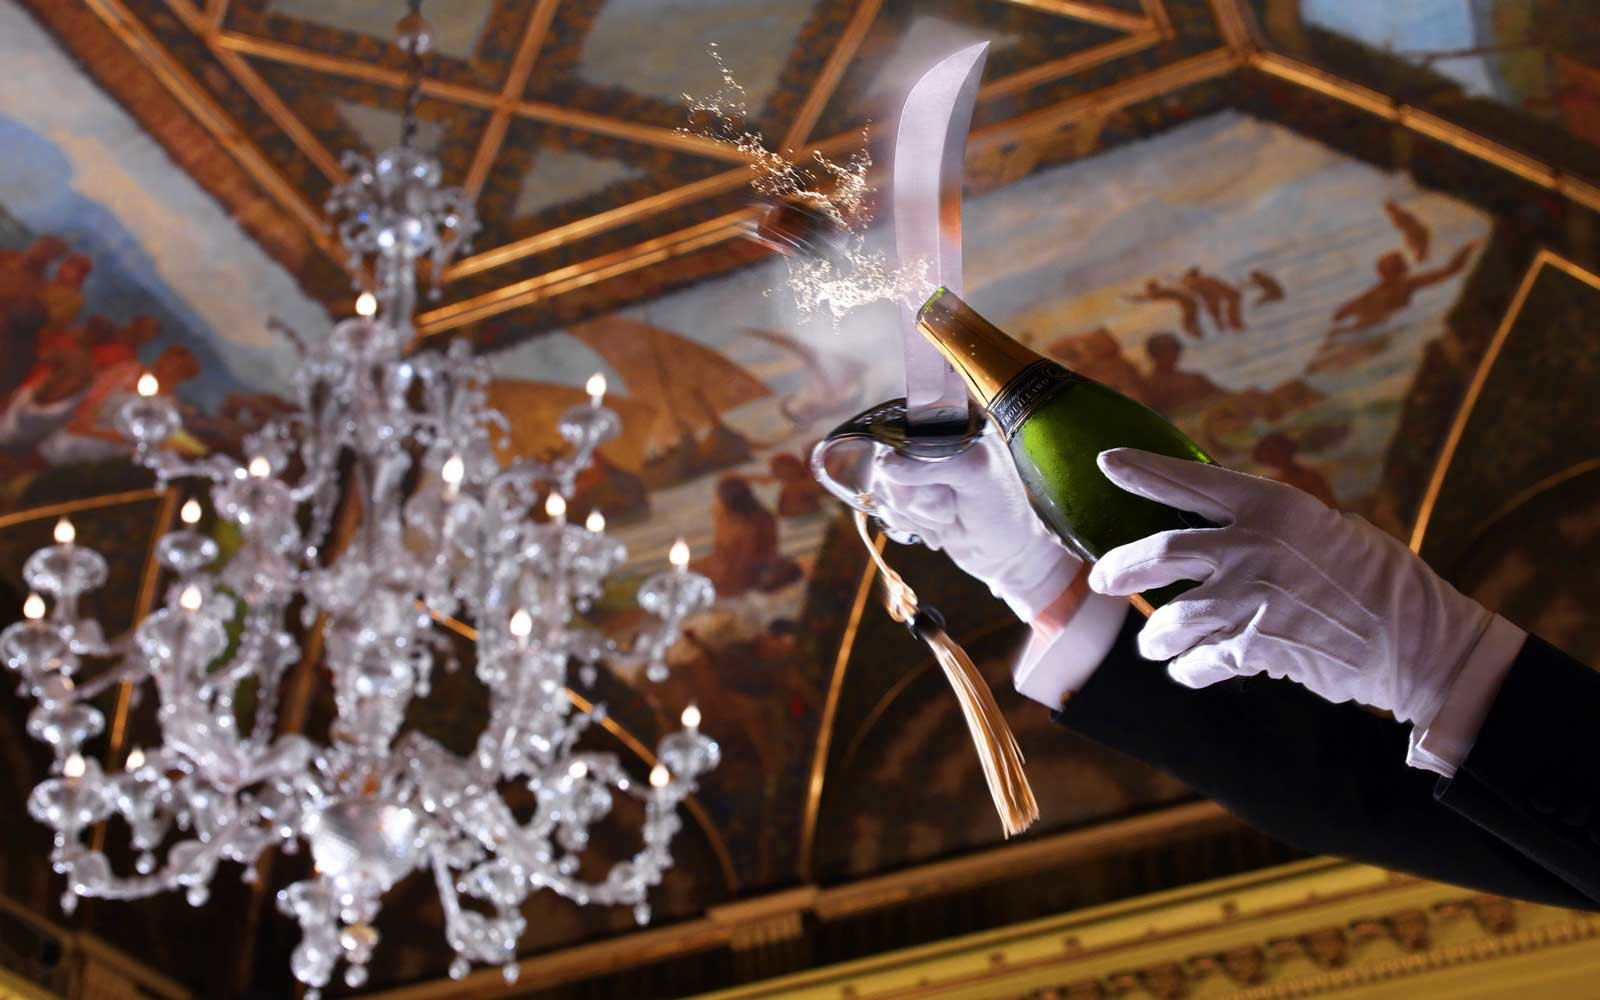 Guests at the St. Regis San Francisco can get a highly champagne sabering.